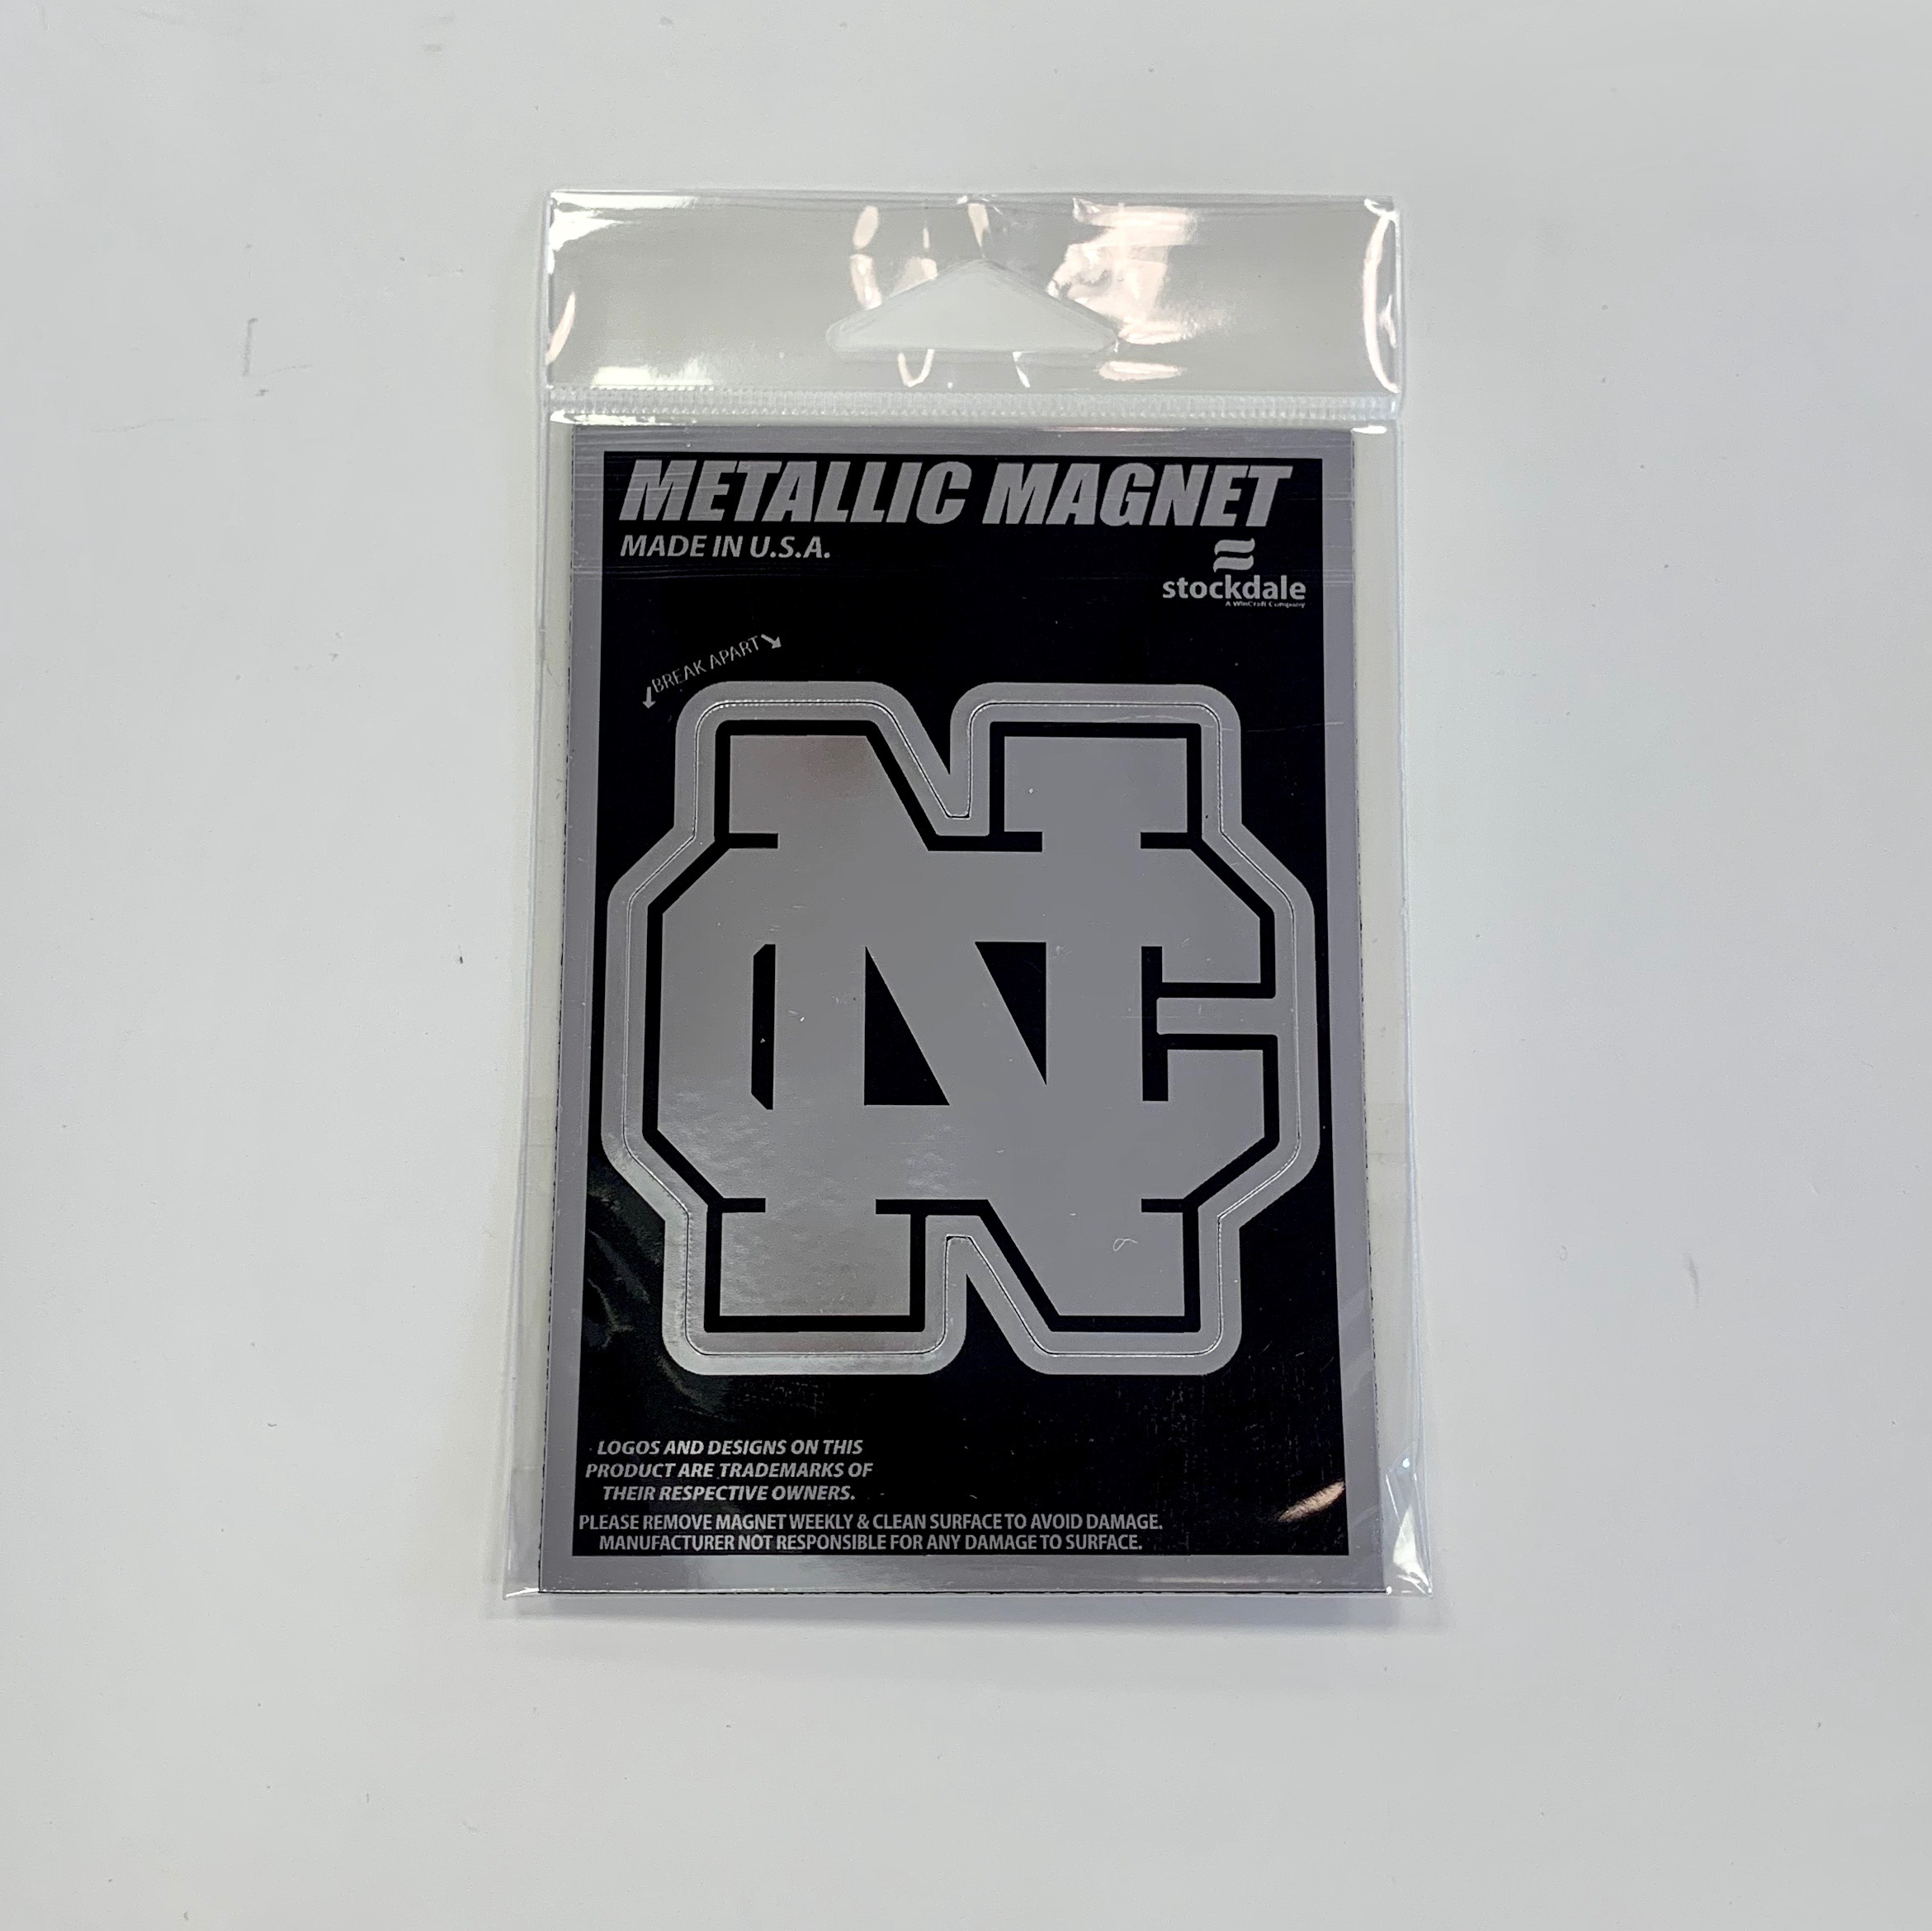 Image for the Magnet Metallic 3x5 Black w/Silver NCC Logo product